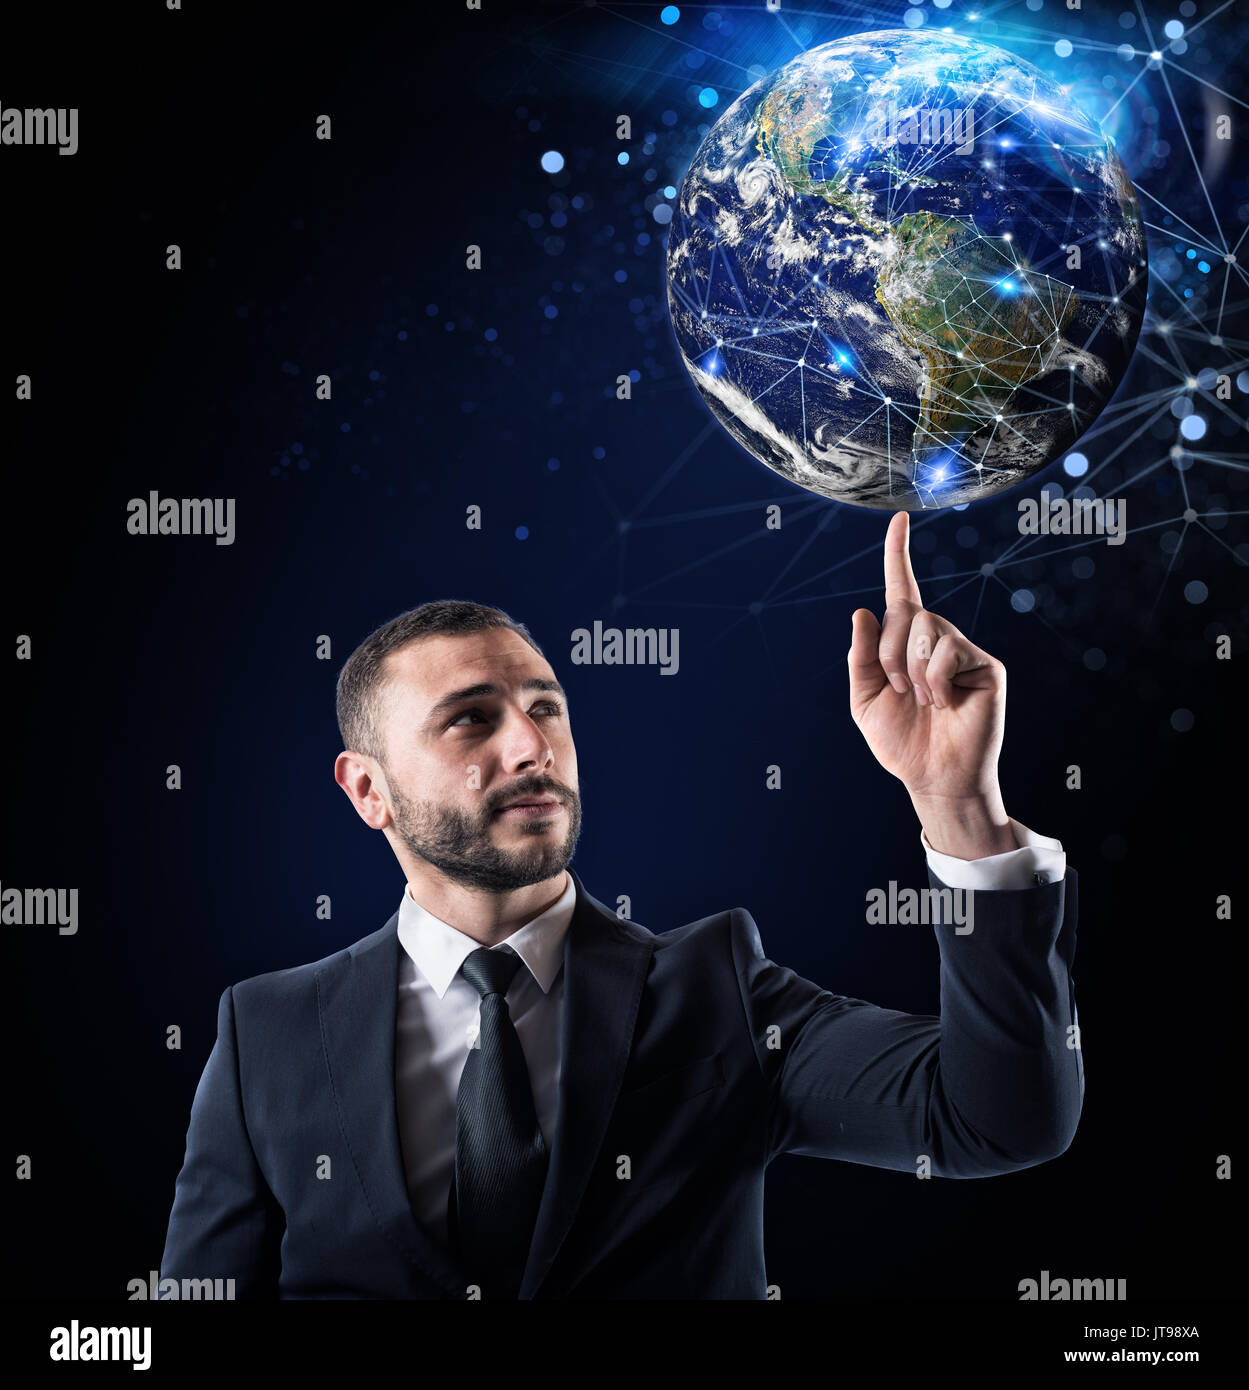 Connexion internet Global concept. Monde fournie par la NASA Photo Stock